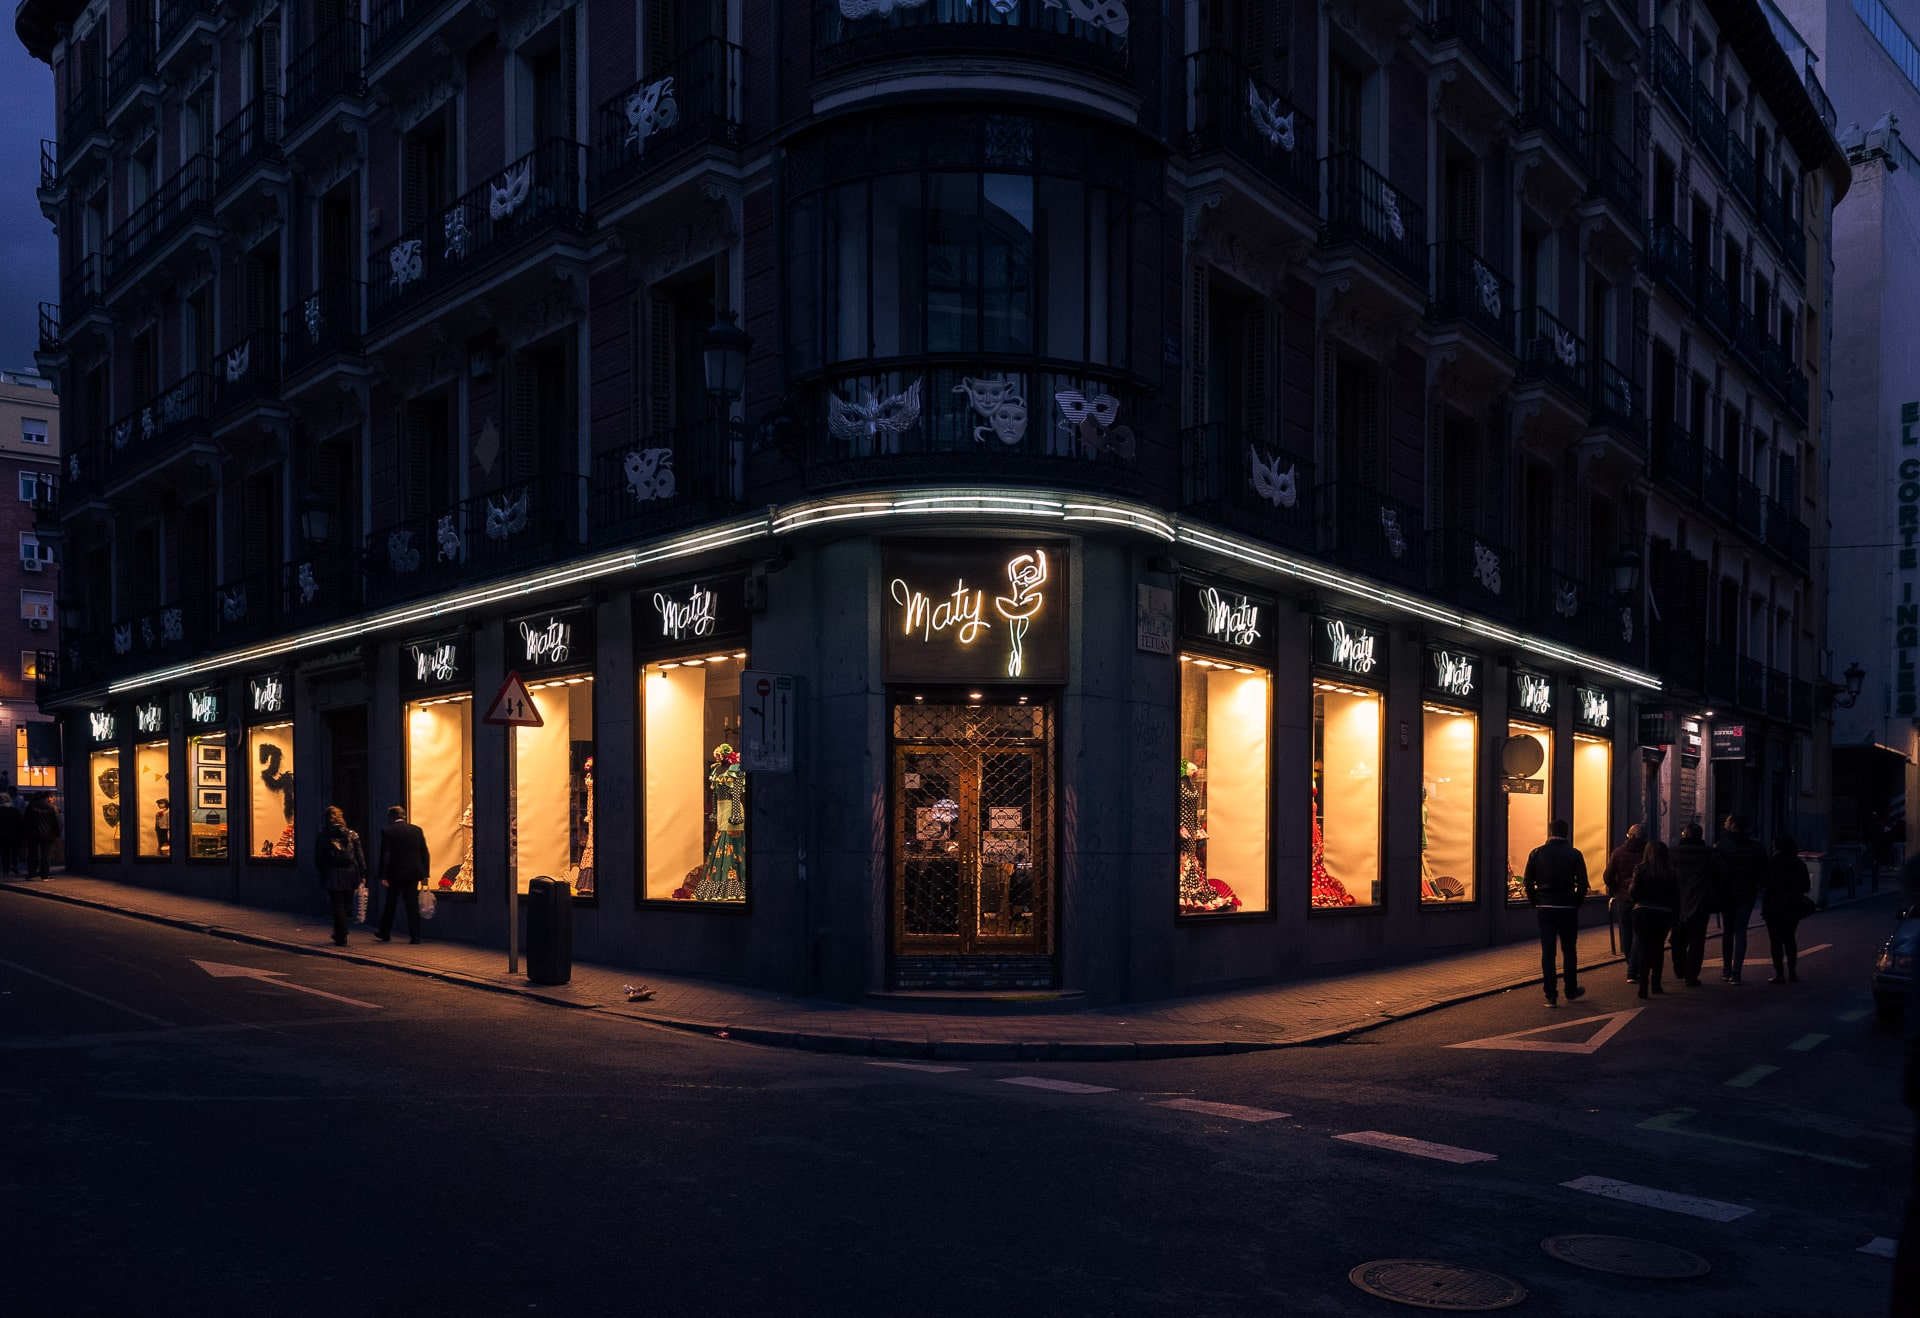 lighted shop on a dark street